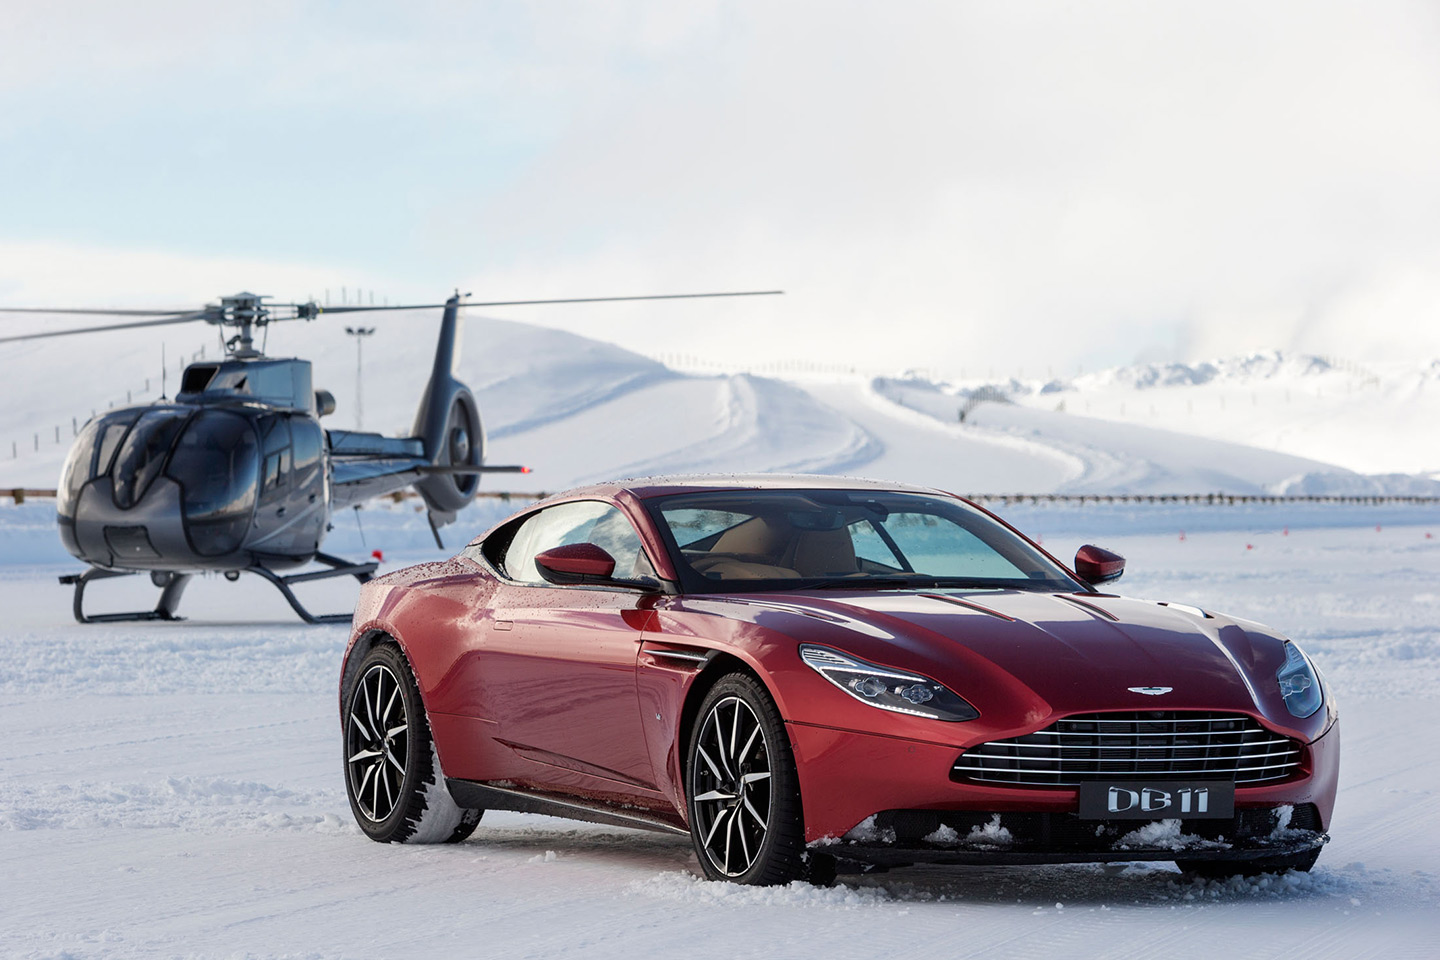 Red Aston Martin and Helicopter start point, during New Zealand on Ice event